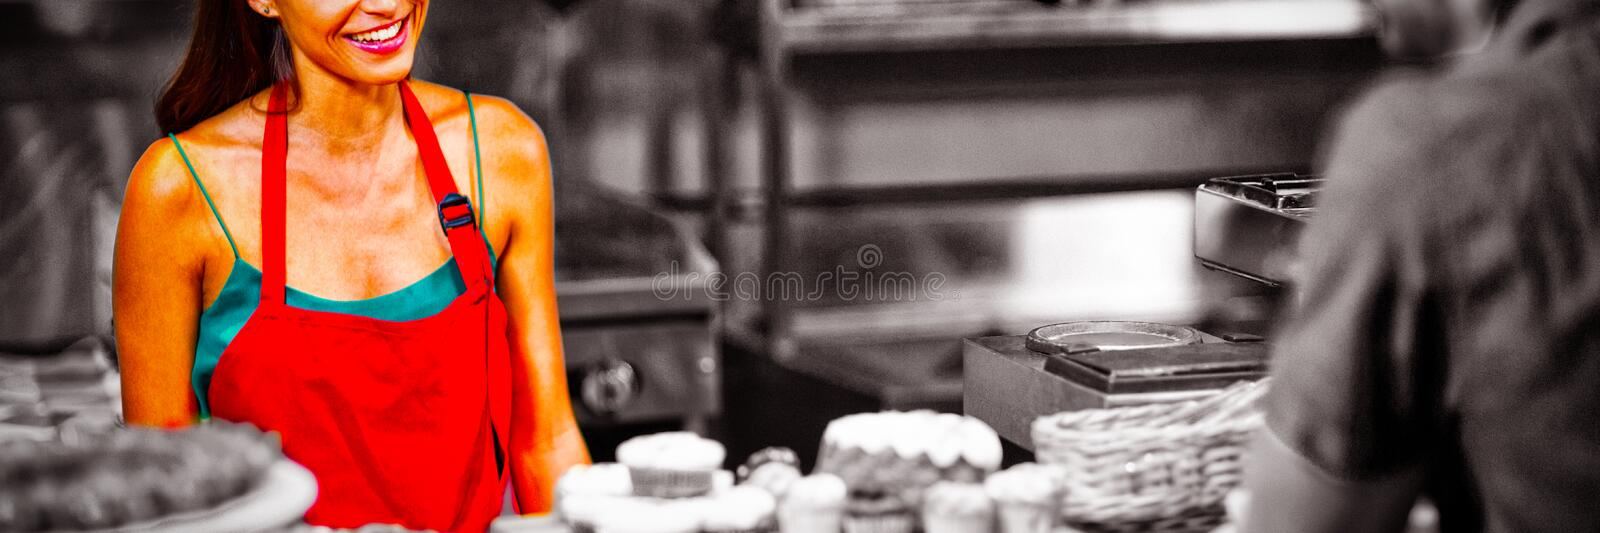 Smiling female staff interacting to customer at counter royalty free stock photo